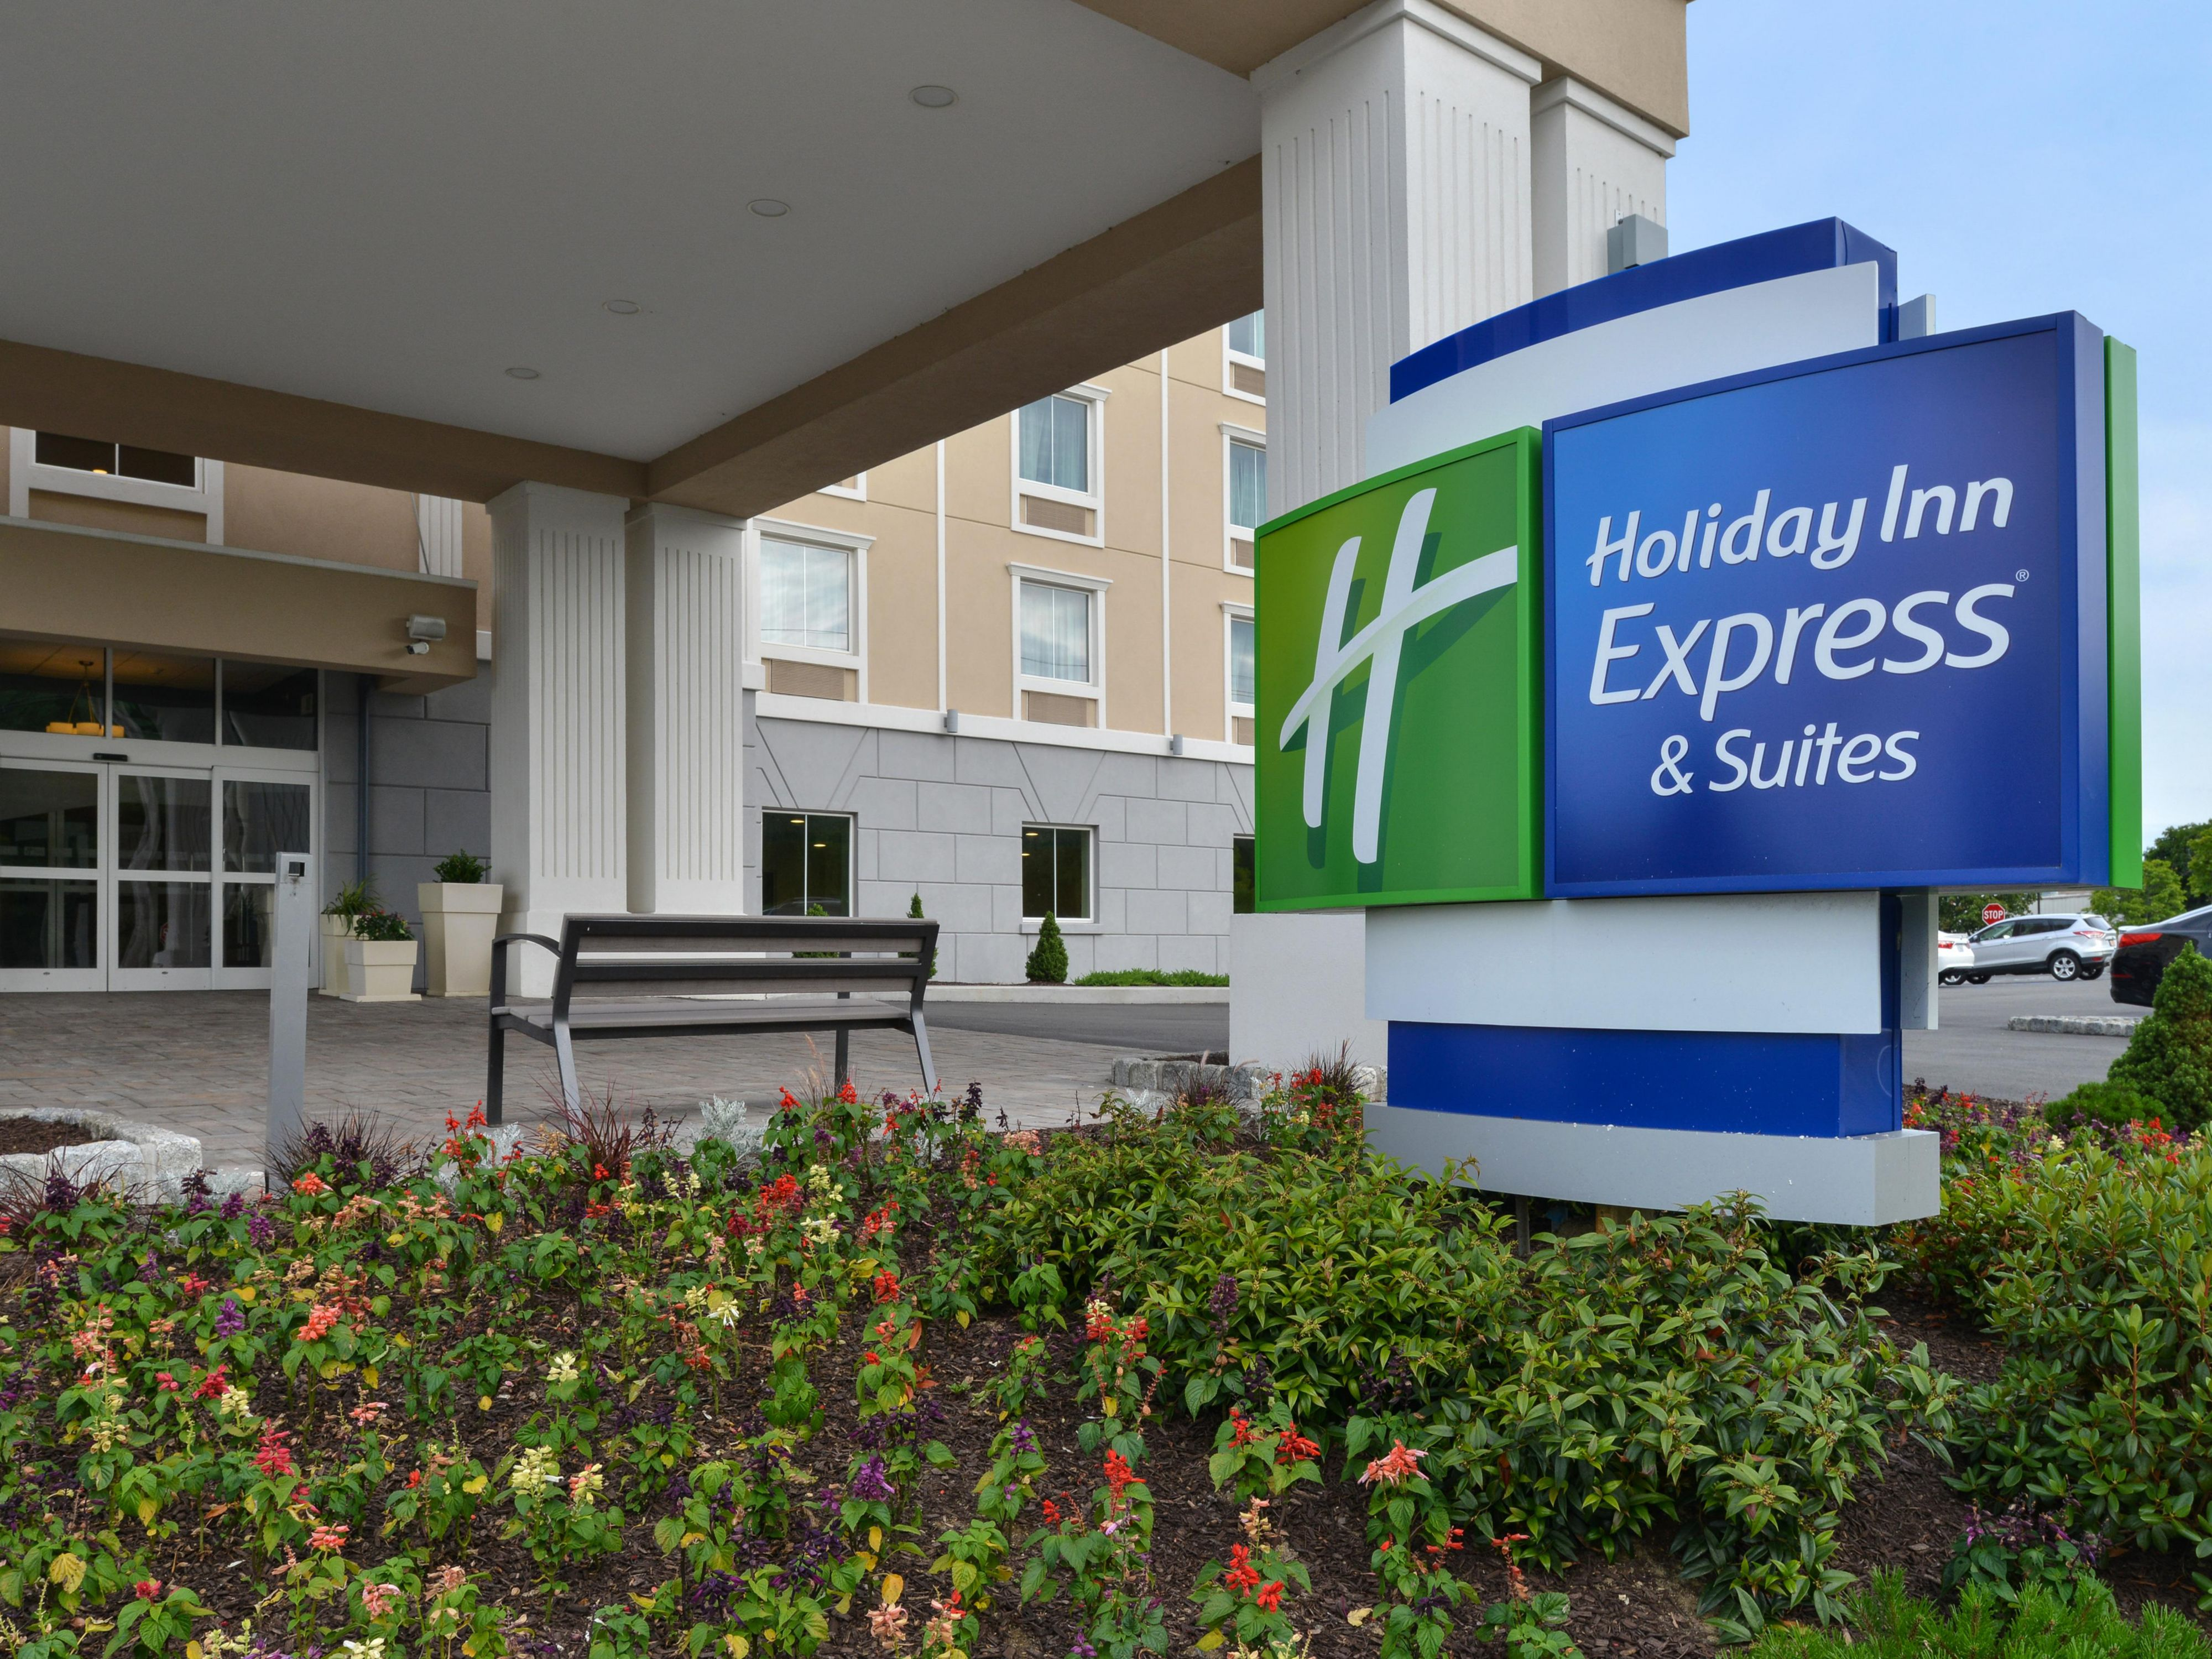 Holiday Inn Express Amp Suites Peekskill Lower Hudson Valley